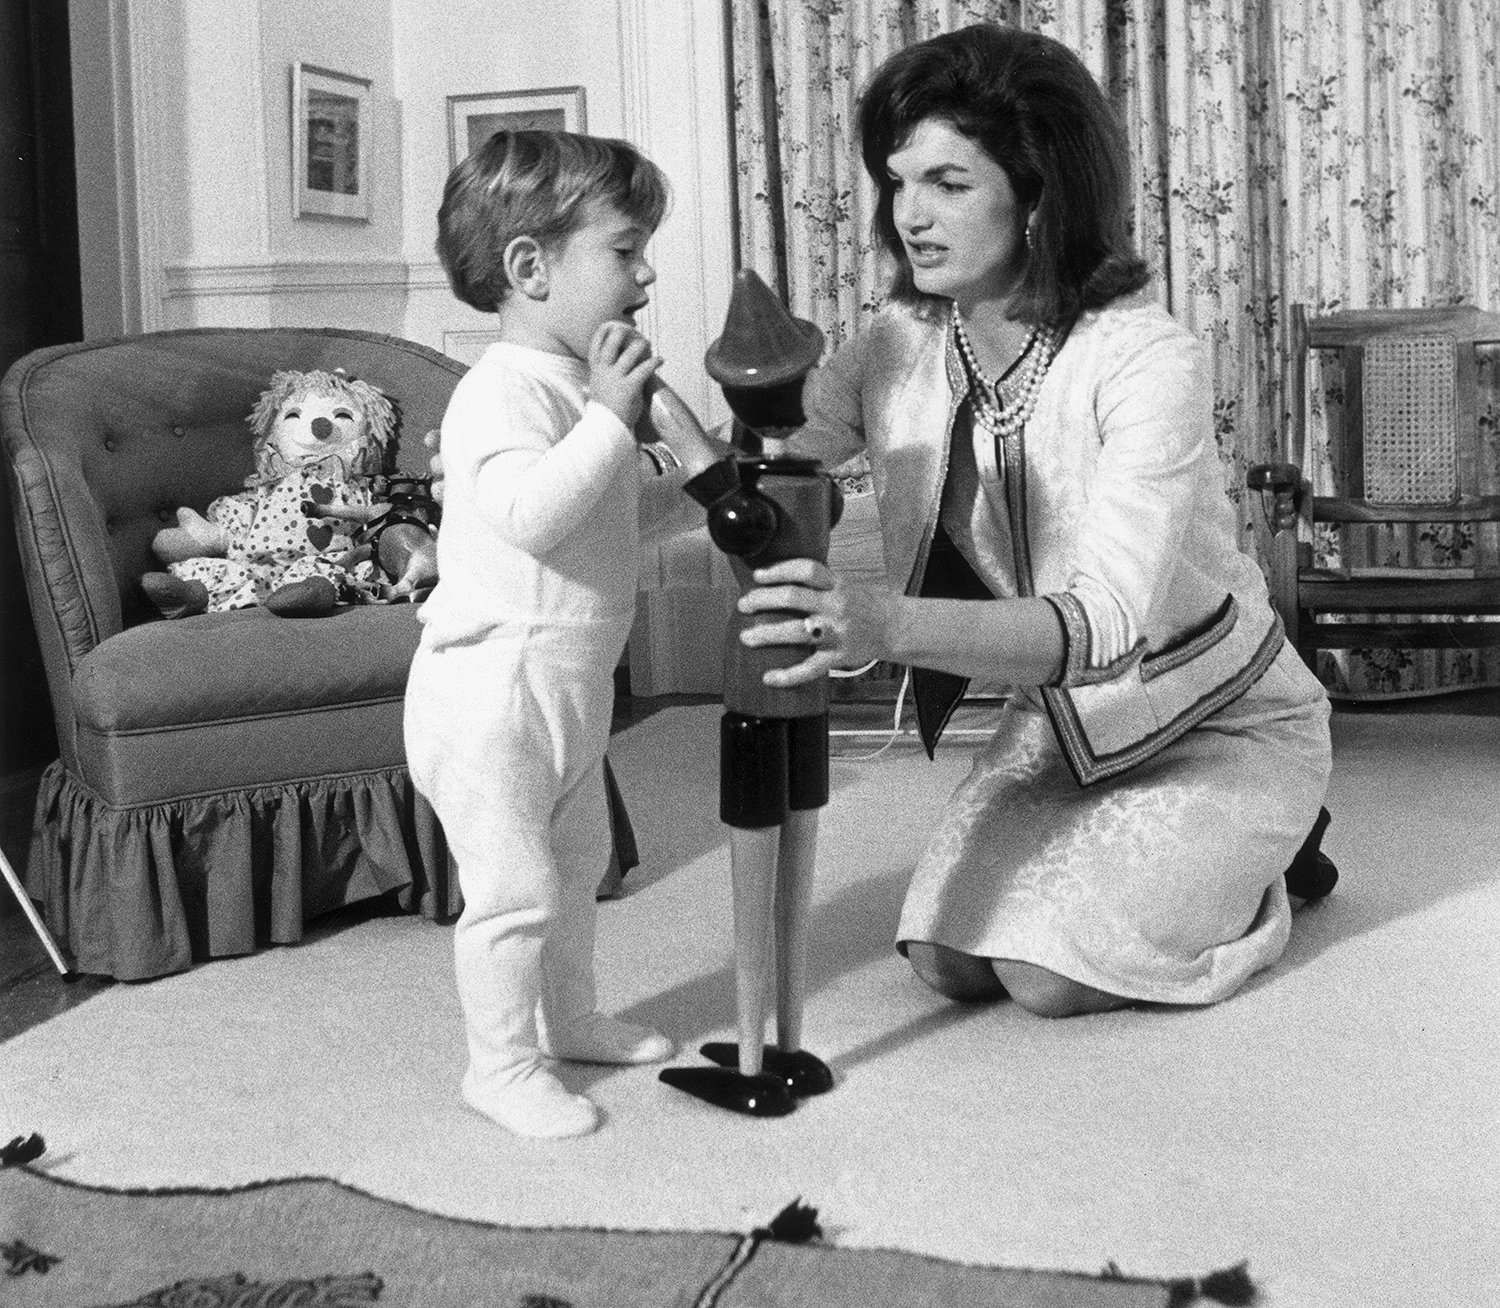 From left: John F. Kennedy Jr. and former First Lady Jacqueline Kennedy in the White House in November 1962